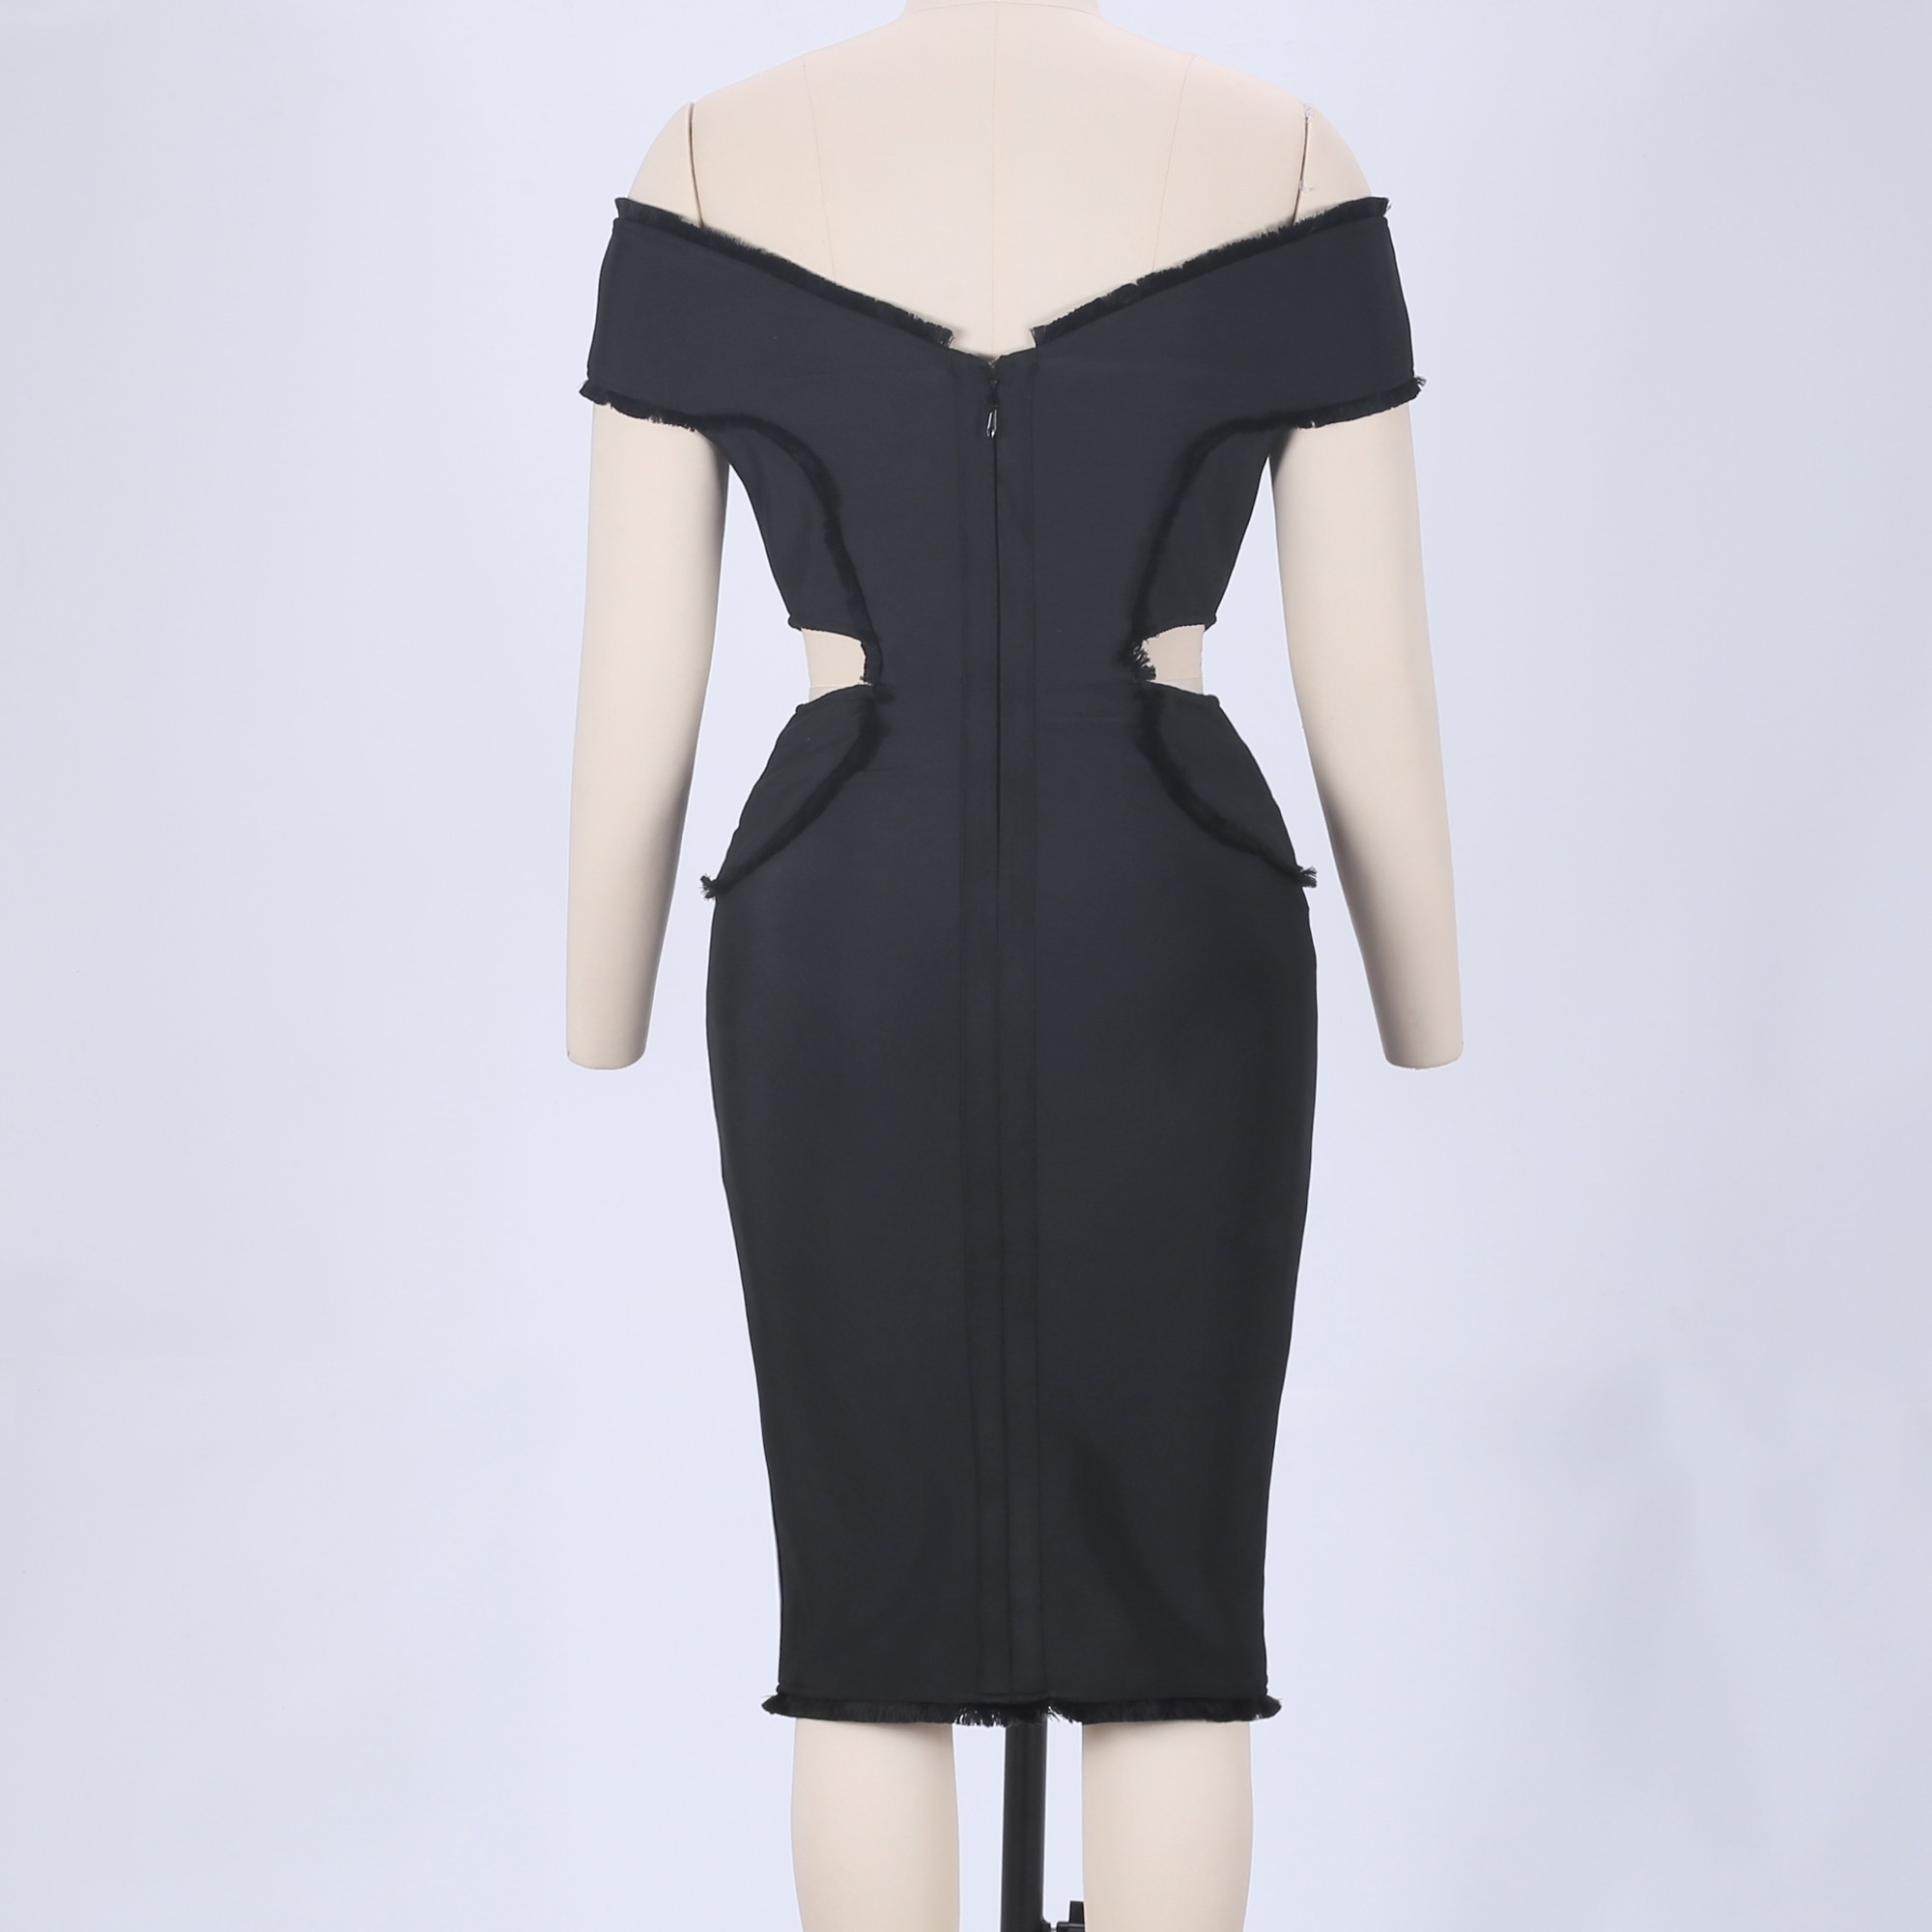 Black Off Shoulder Sleeveless Knee Length Cut Out Fashion Bandage Dress HB4337-Black